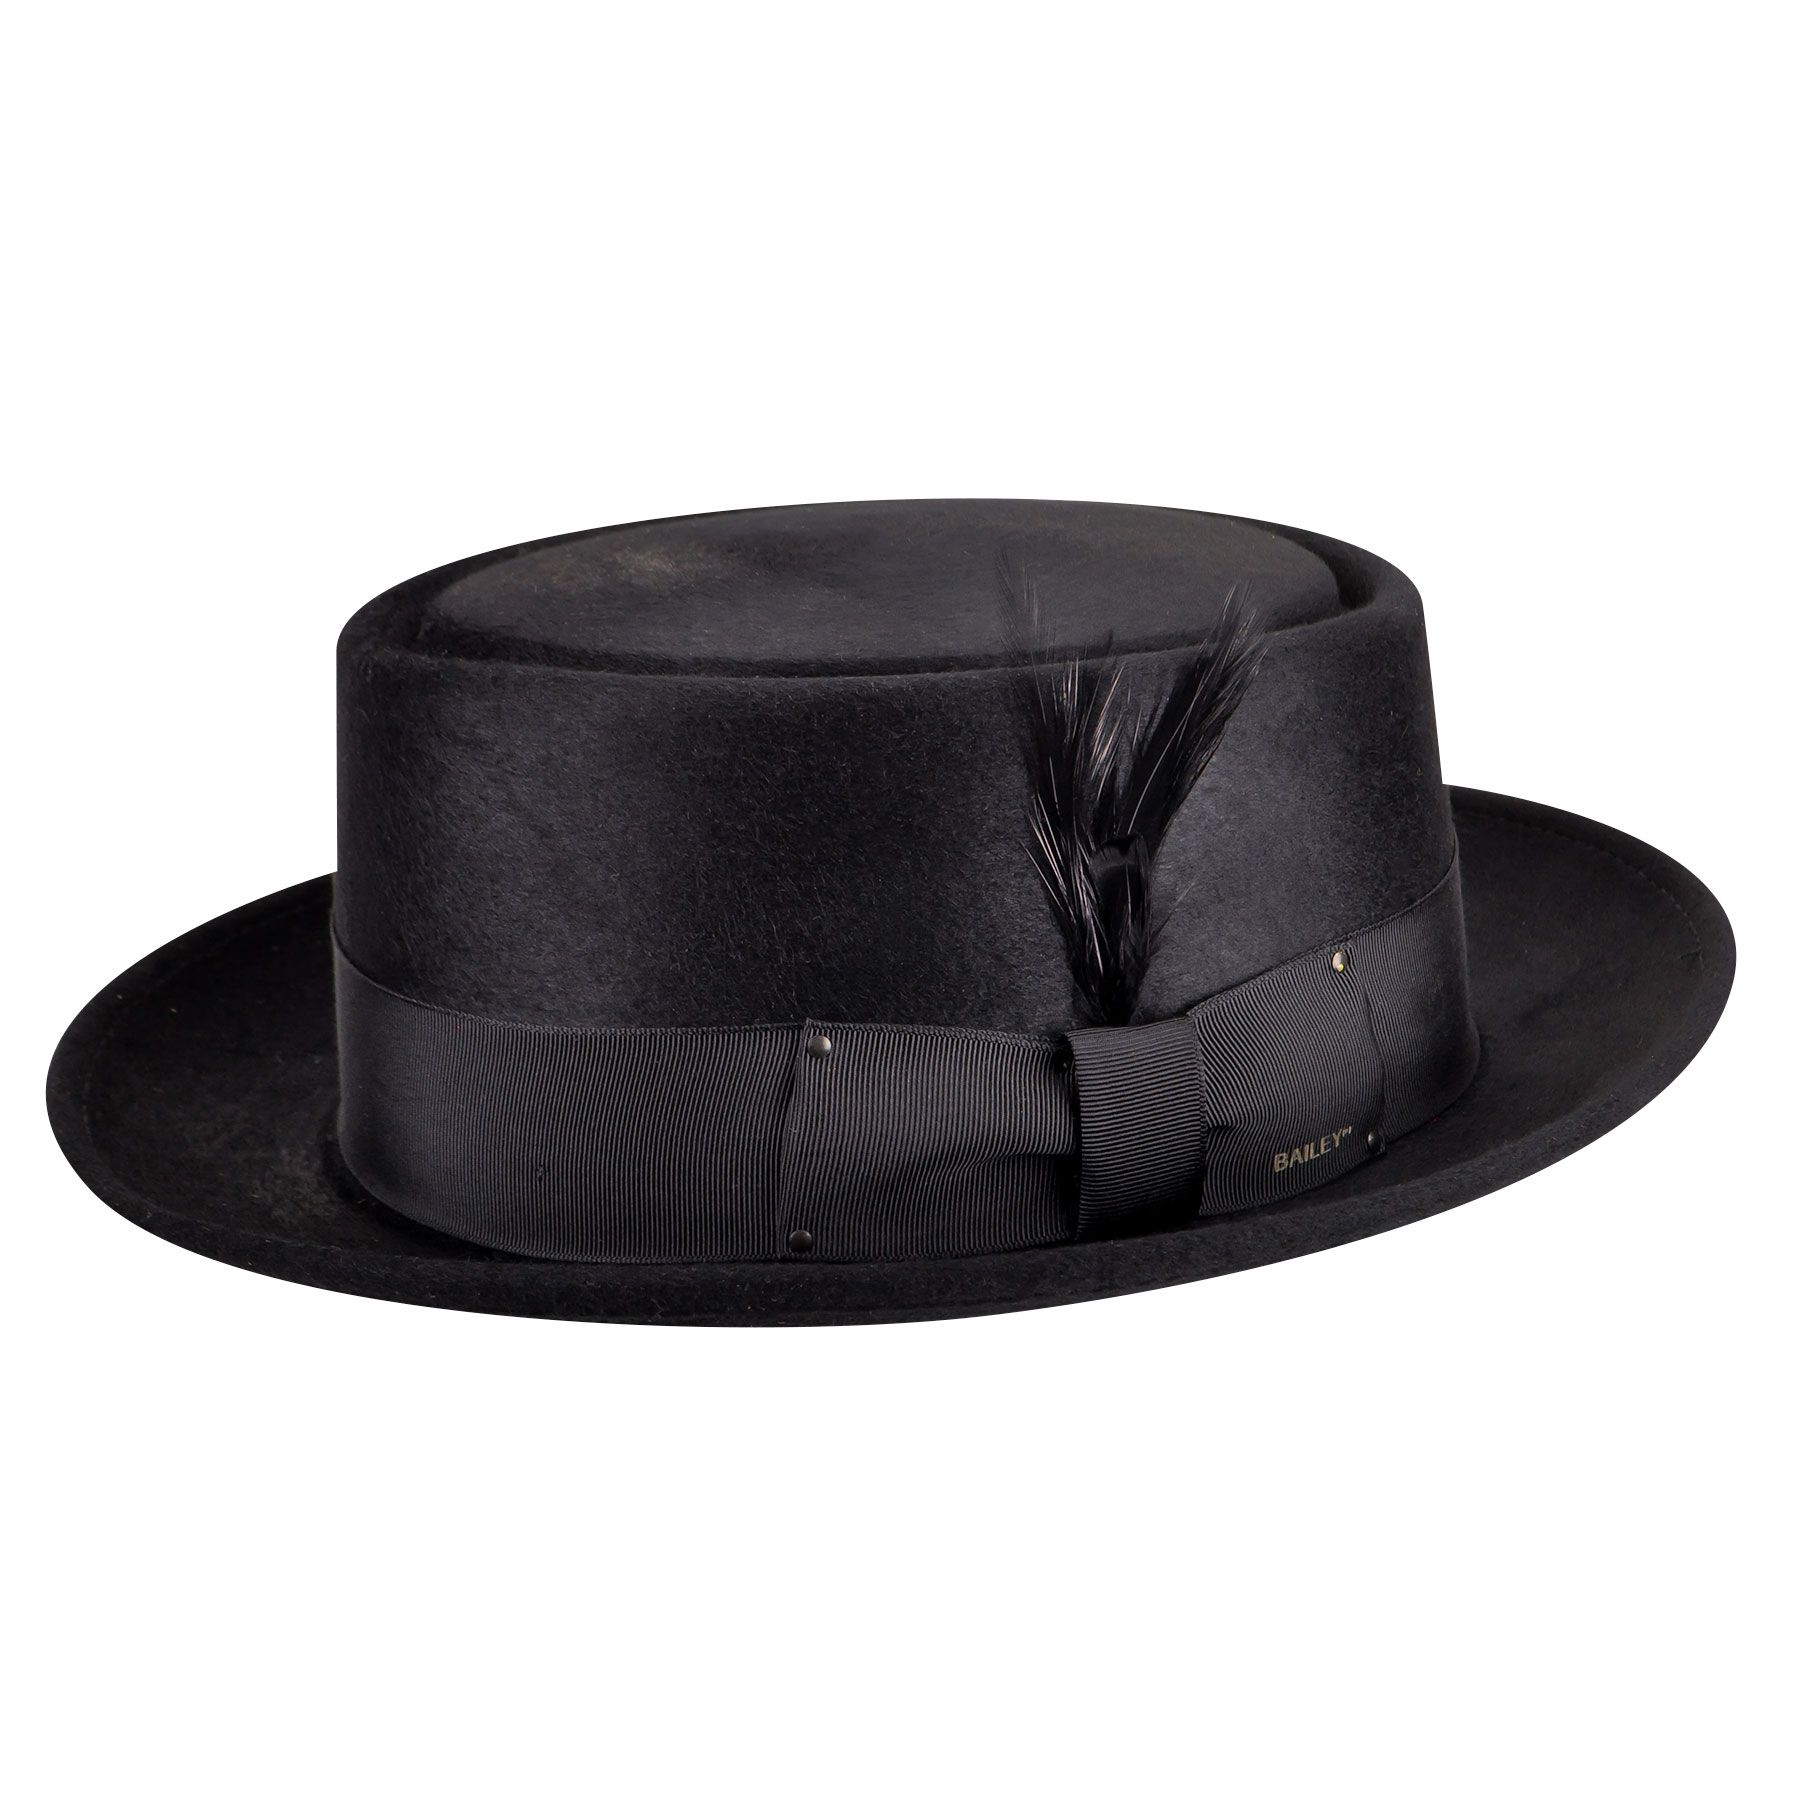 Gamble /& Gunn Uomo Cappello Pork pie